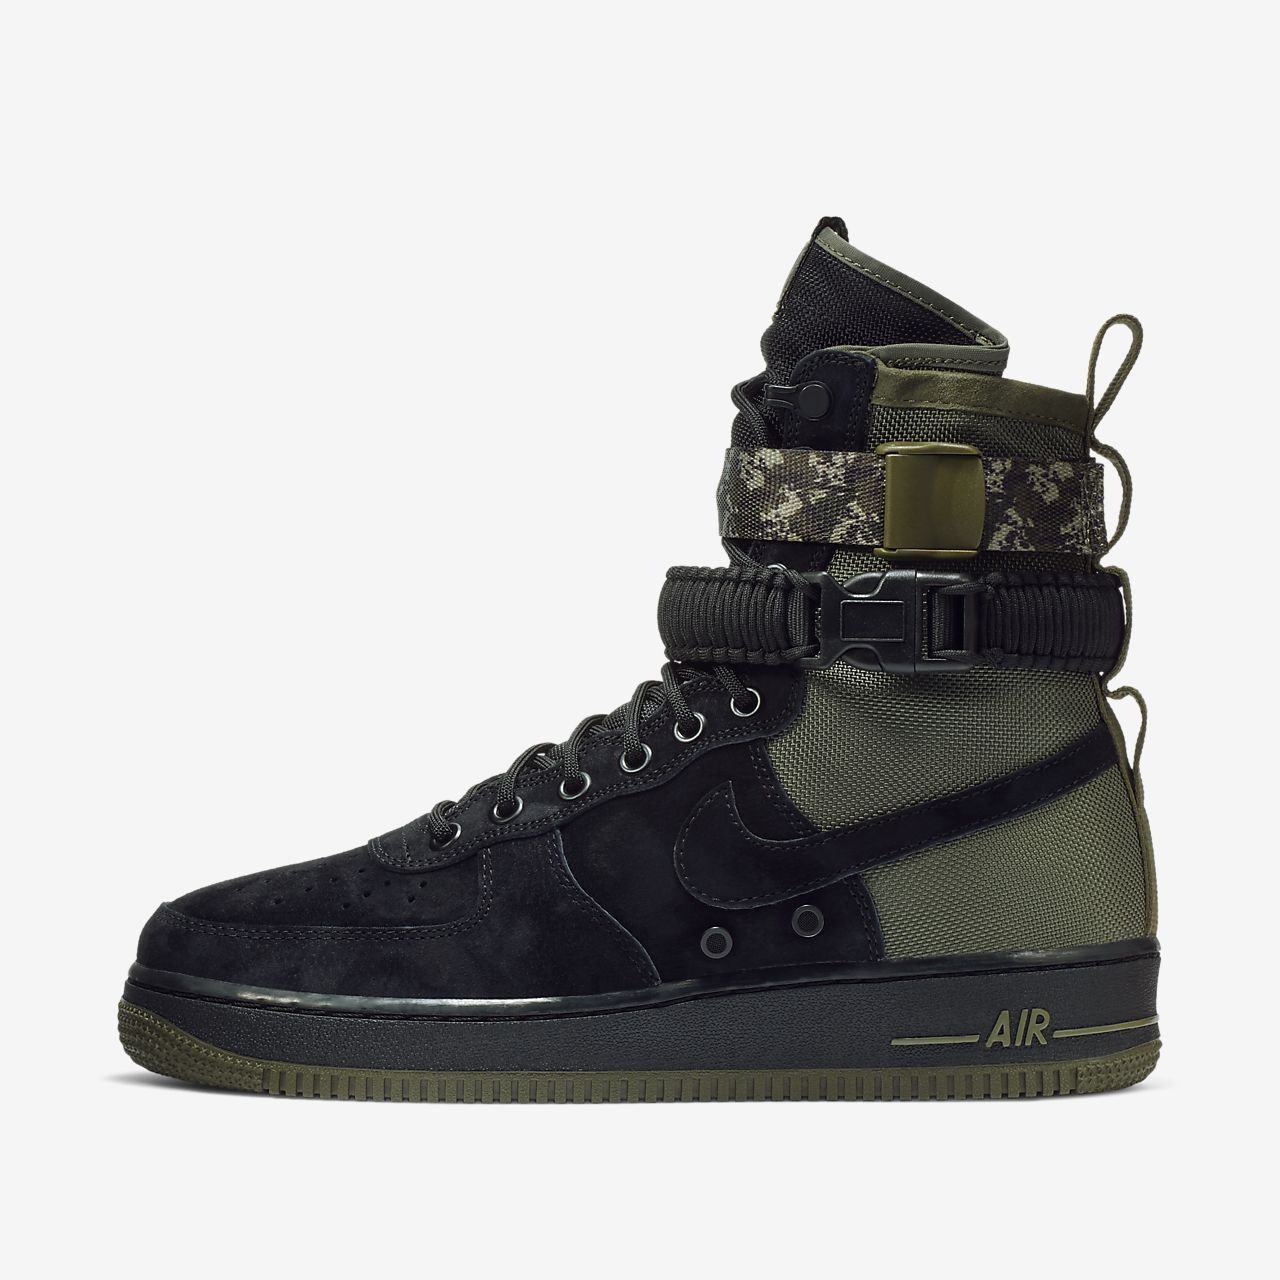 mens nike air force 1 boots black